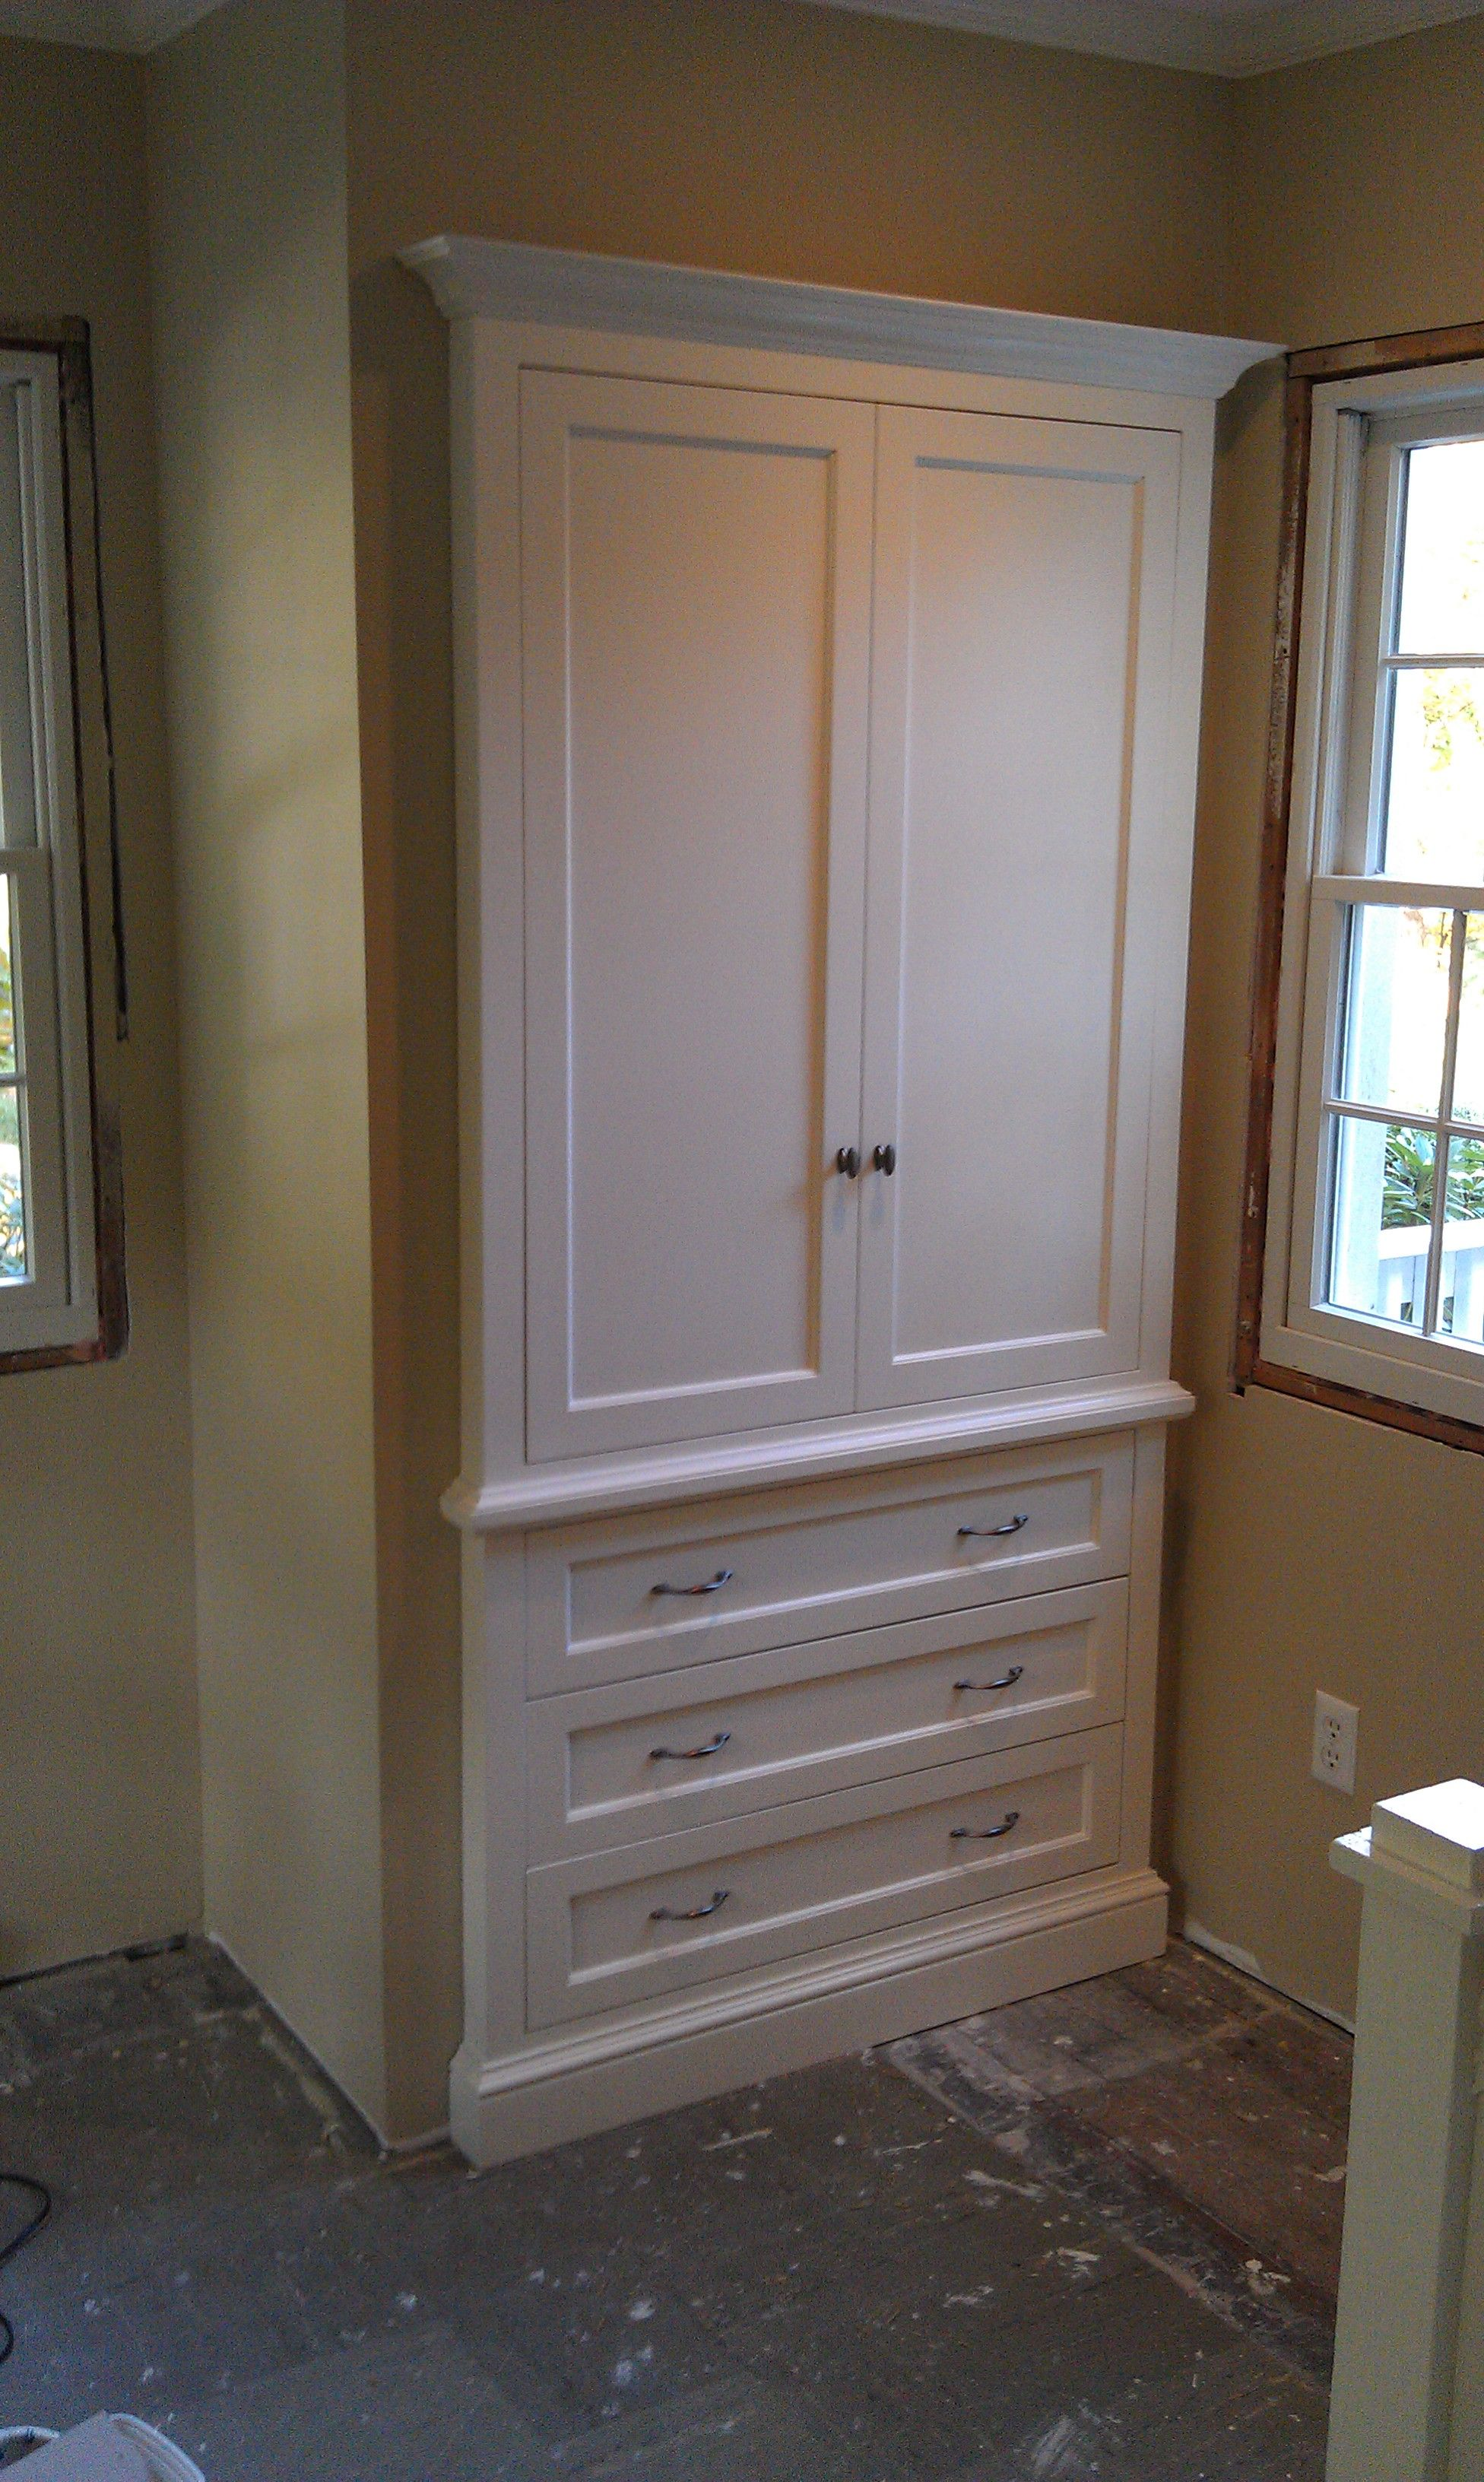 Built In Armoire For Master Bedroom, But Running The Length Of The Wall